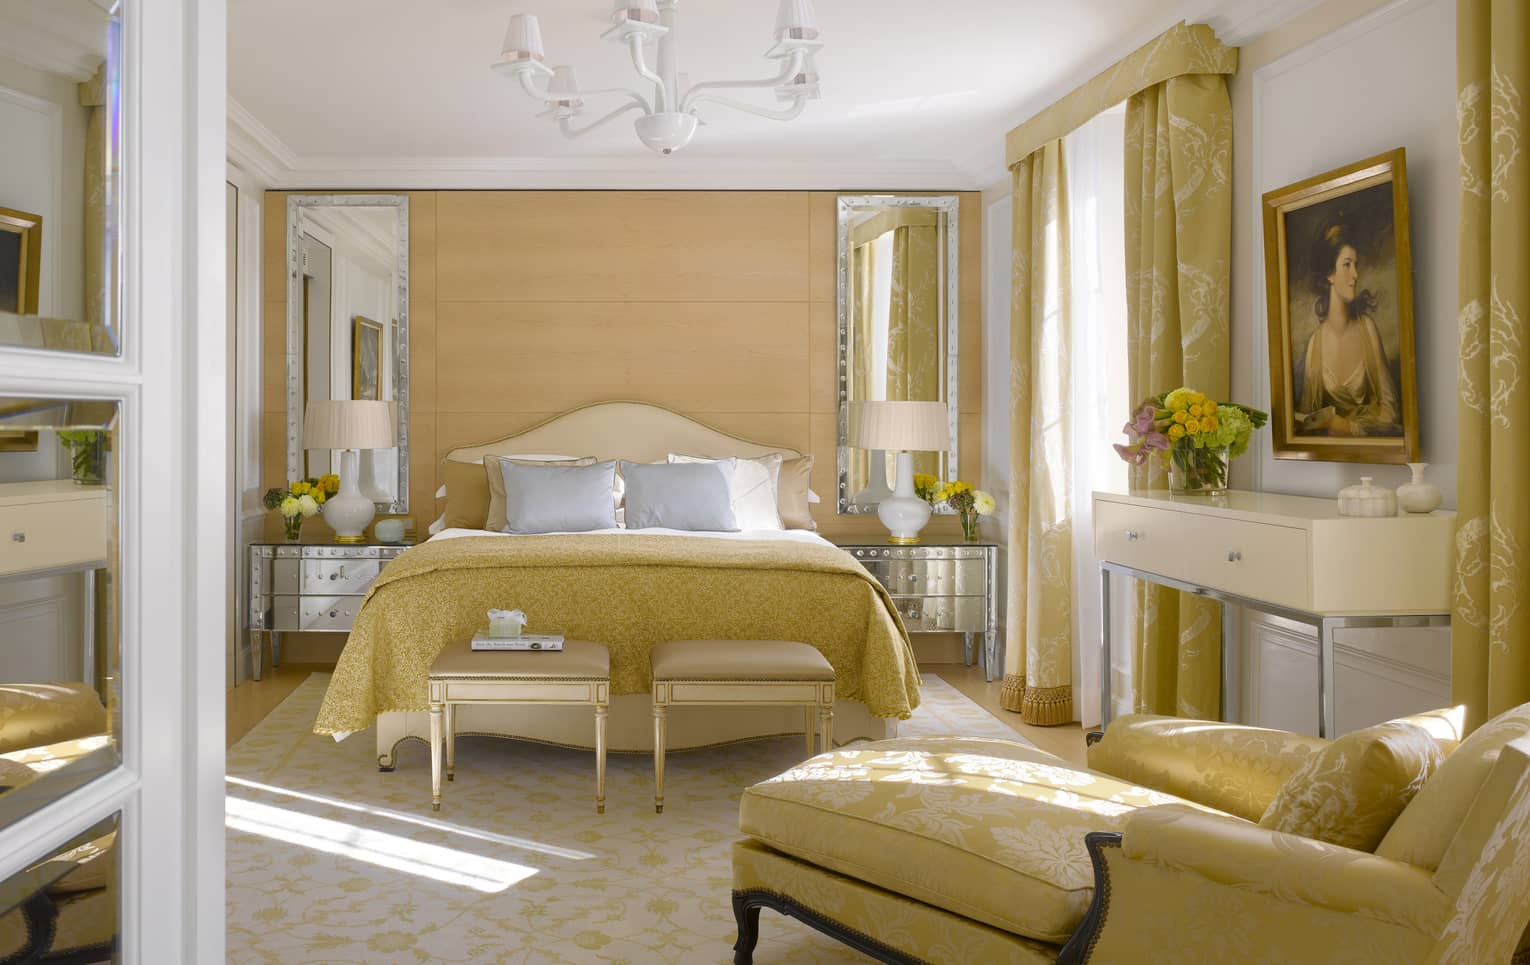 Presidential suite with queen bed, chaise lounge, and gold Victorian accents